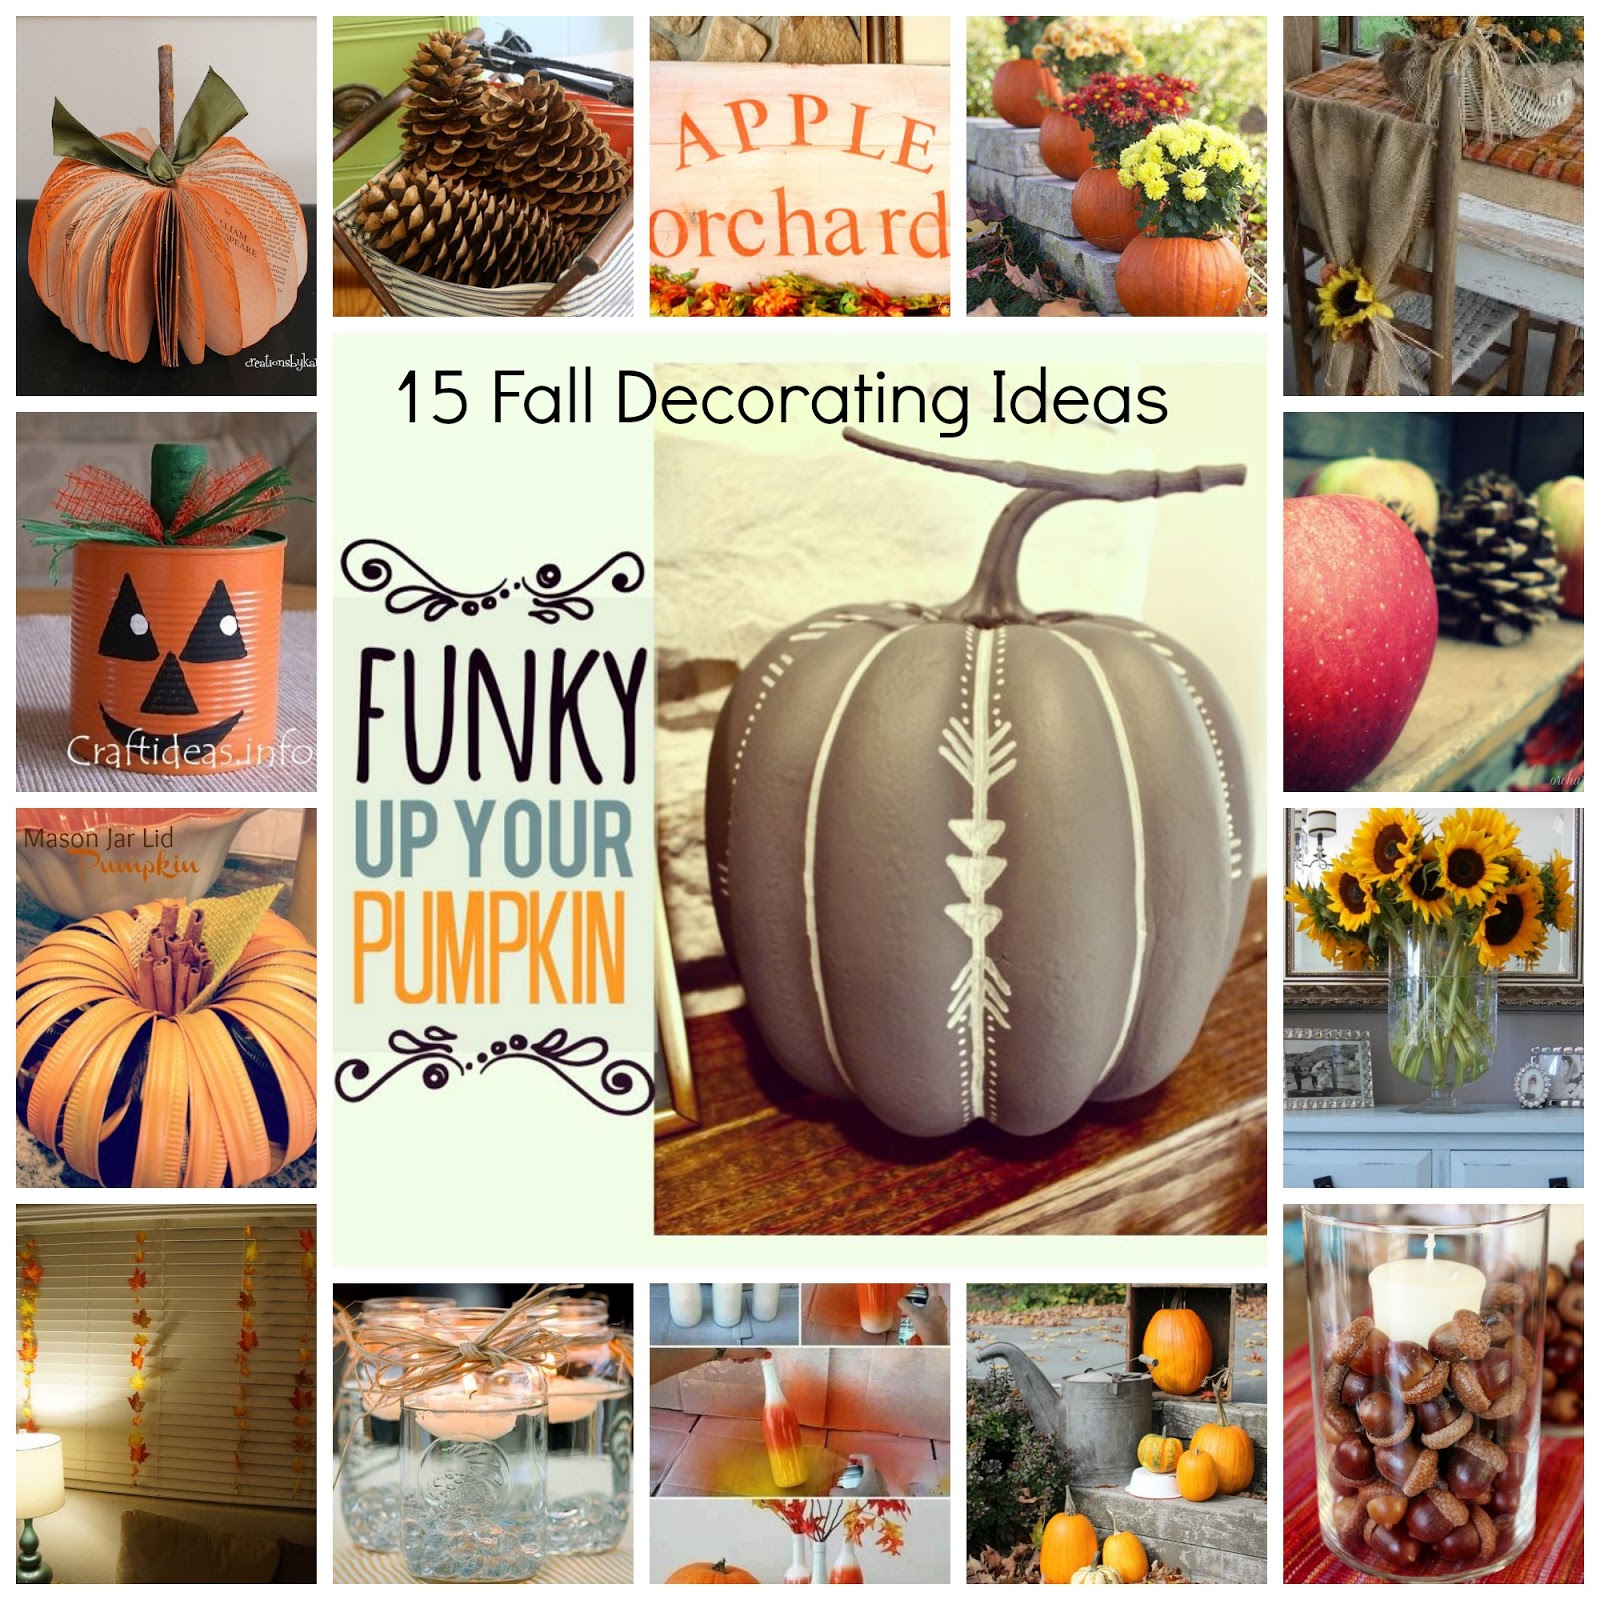 Instagram Fall Decorating Ideas: Embrace The Season With These Fall Decorating Ideas